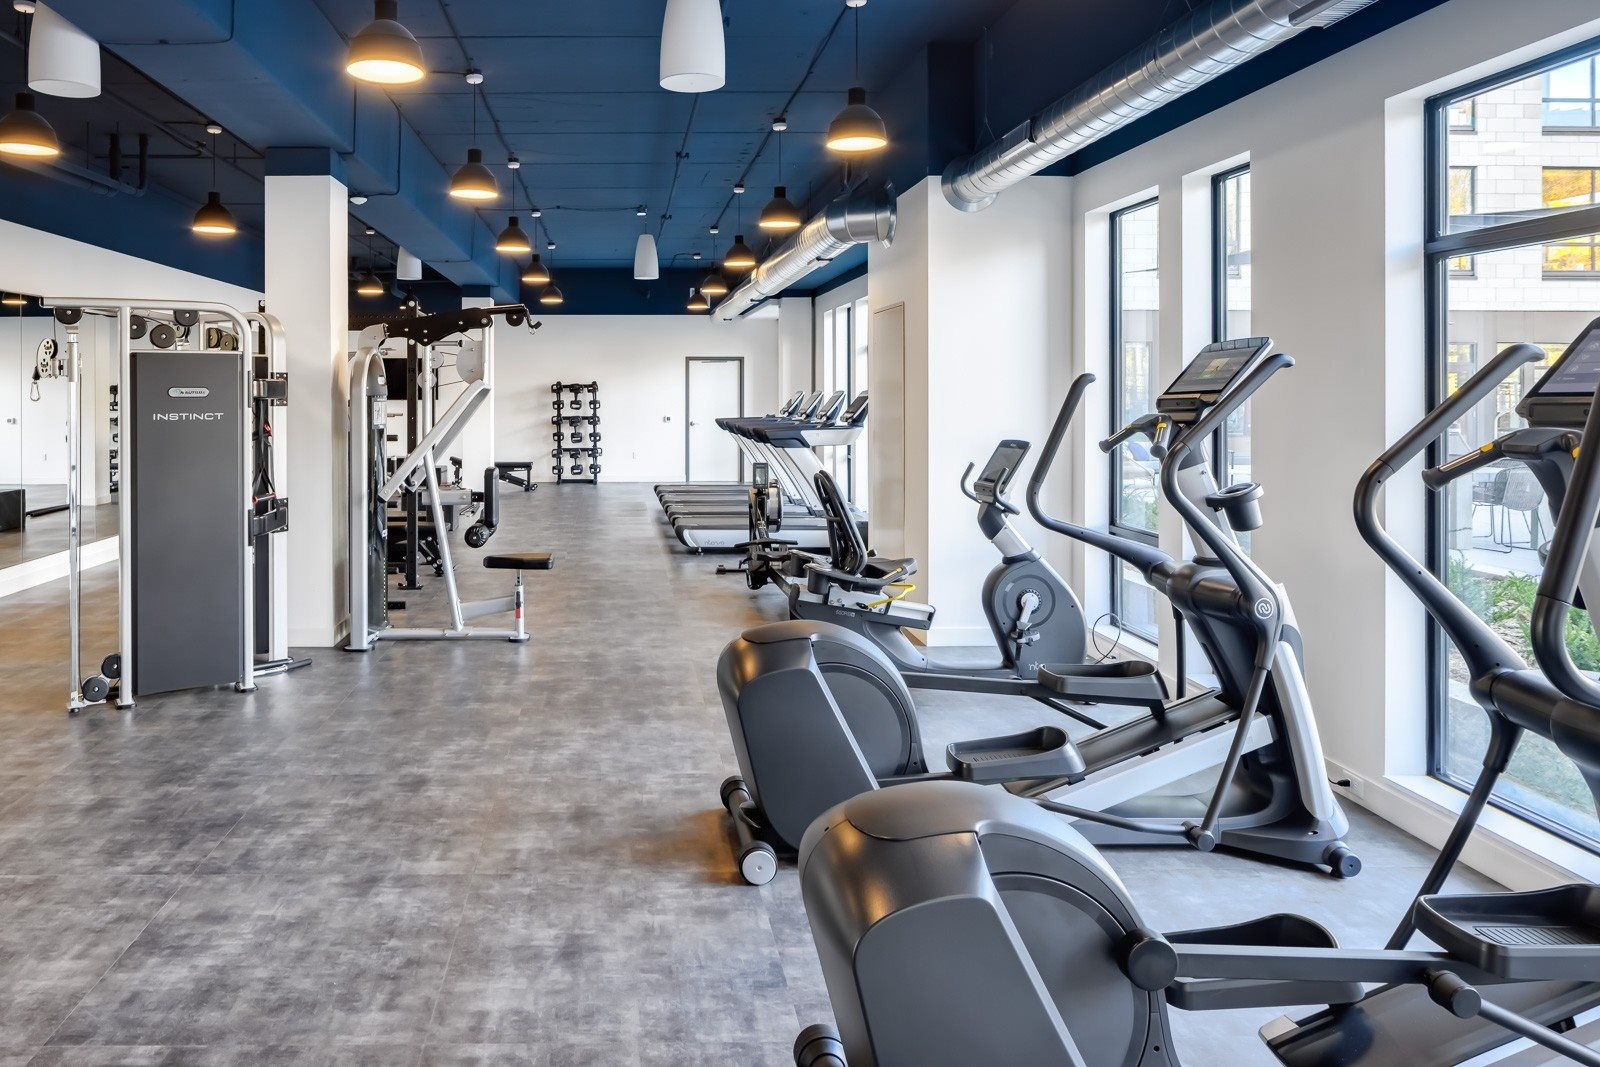 Fitness center with cardio and strength equipment for apartment residents